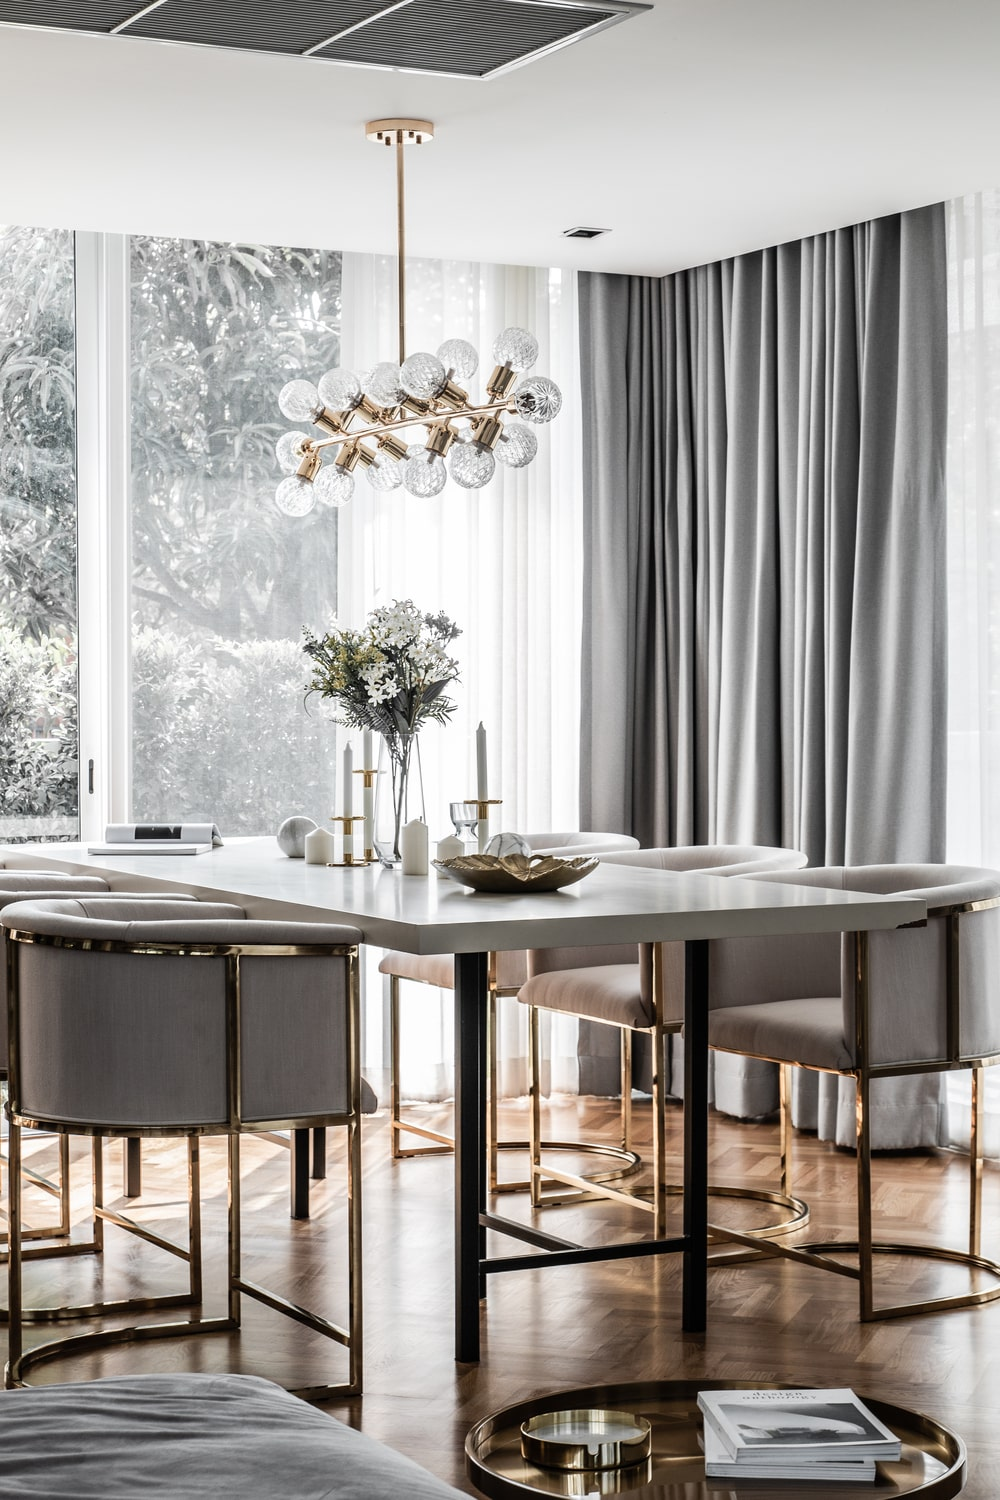 This is a close look at the dining area with a white dining set brightened by the natural light coming in from the large window.